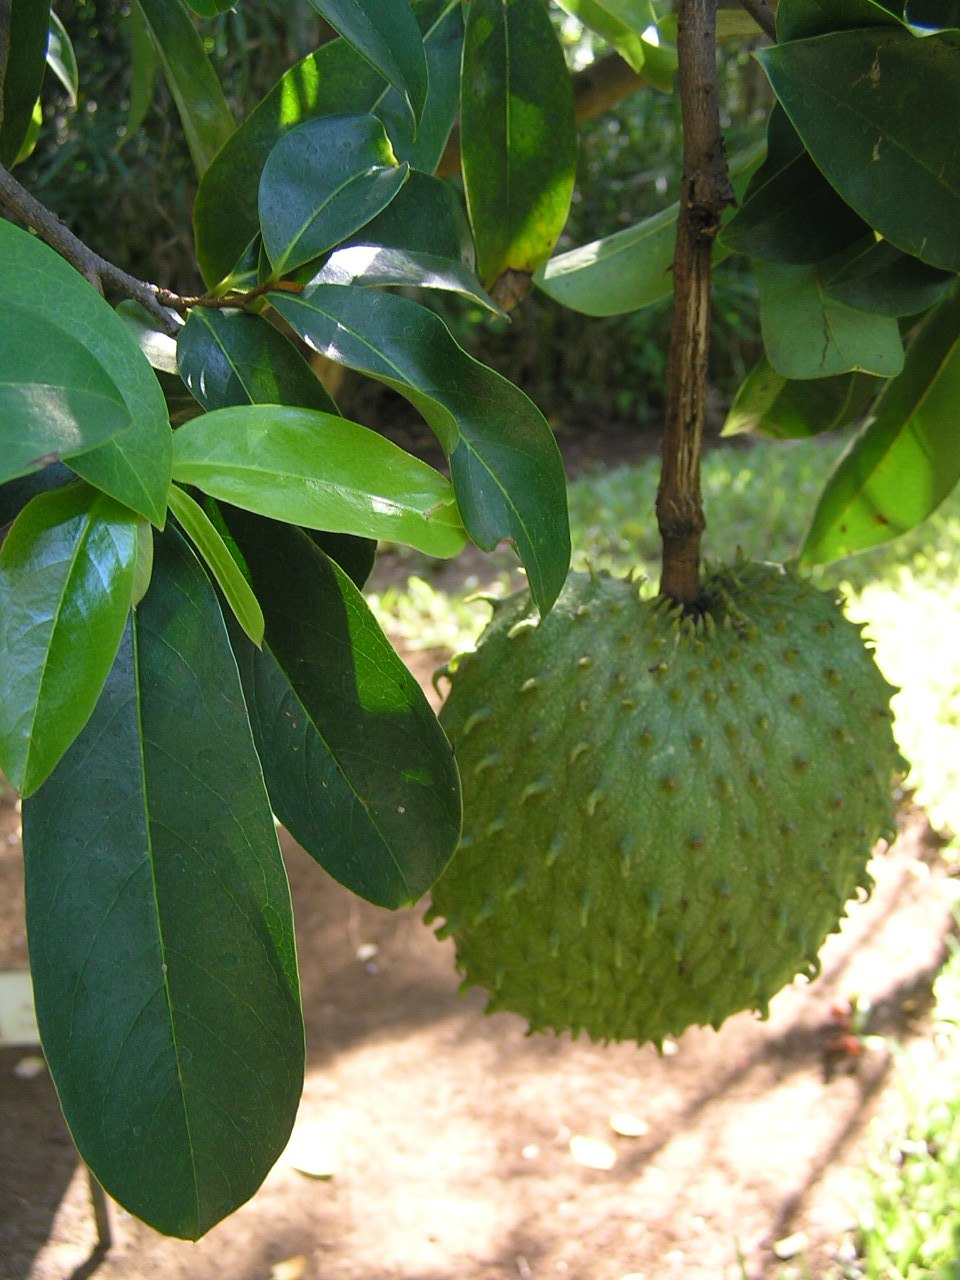 A spiky green fruit growing on a tree